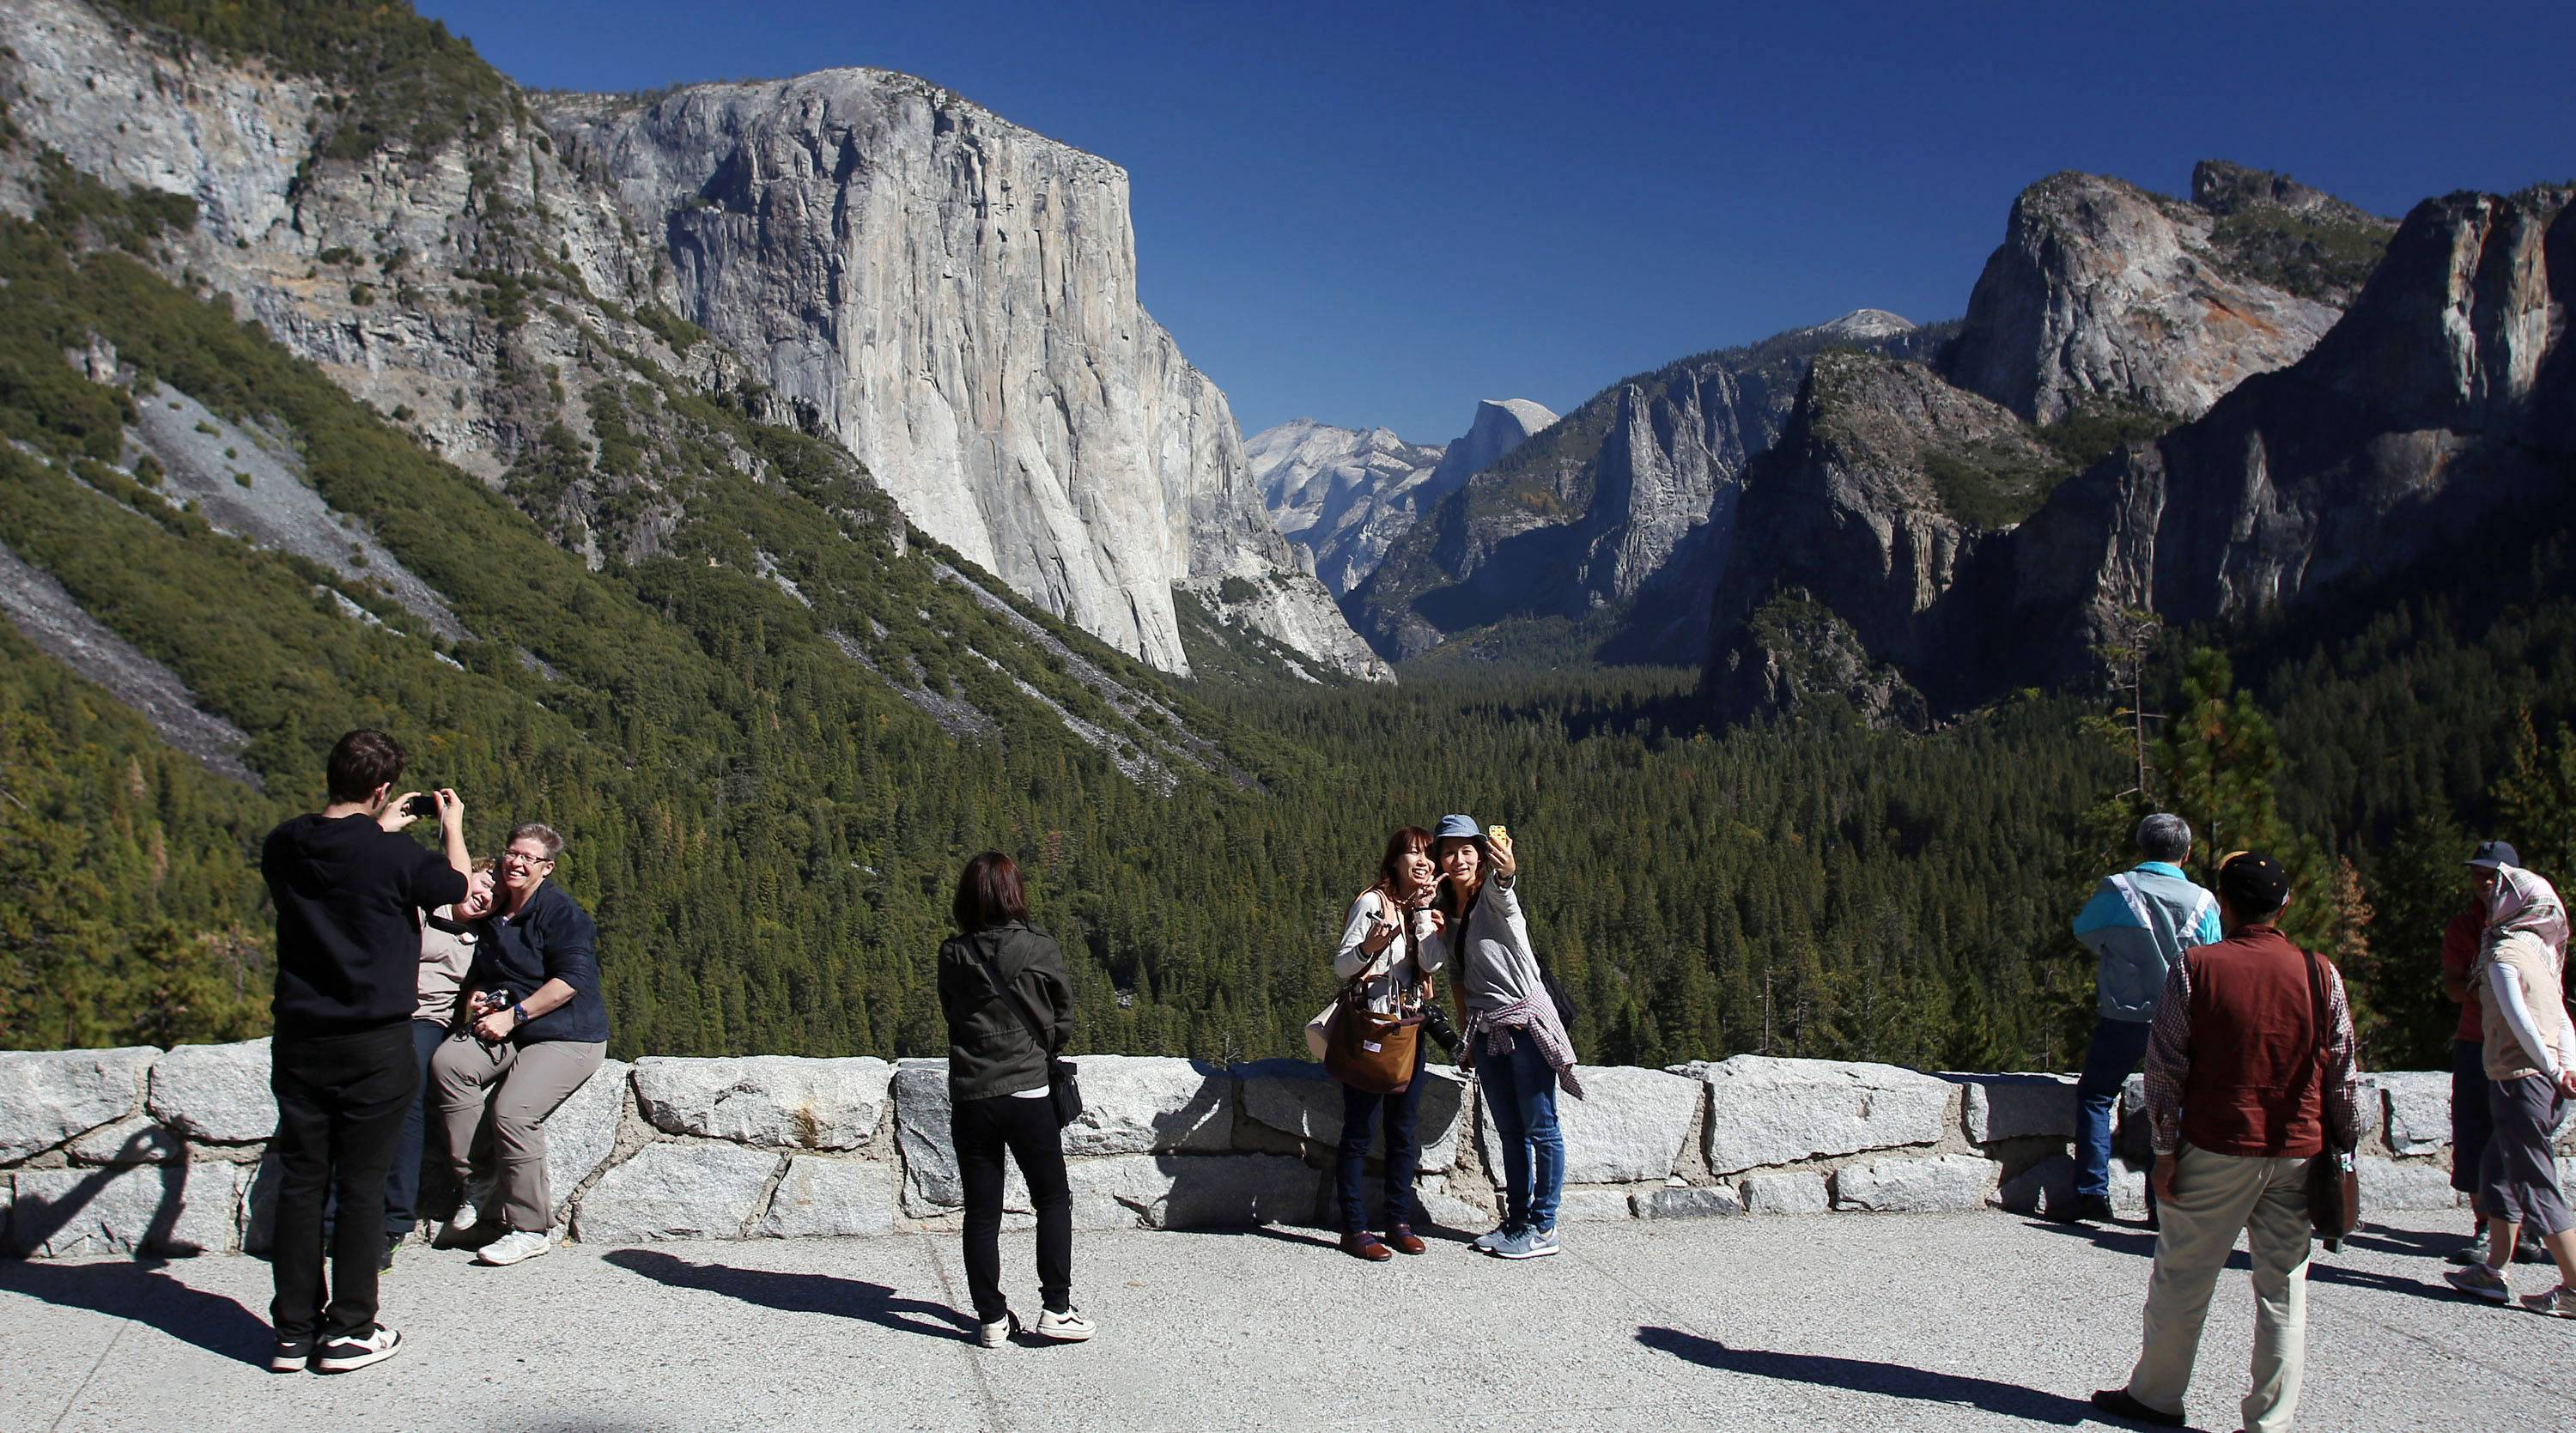 Visitors at Tunnel View enjoy the views of Yosemite National Park, Calif. Tunnel View is a scenic vista which shows off El Capitan, Half Dome and Bridalveil Fall. Yosemite National Park is celebrating the 150th anniversary.